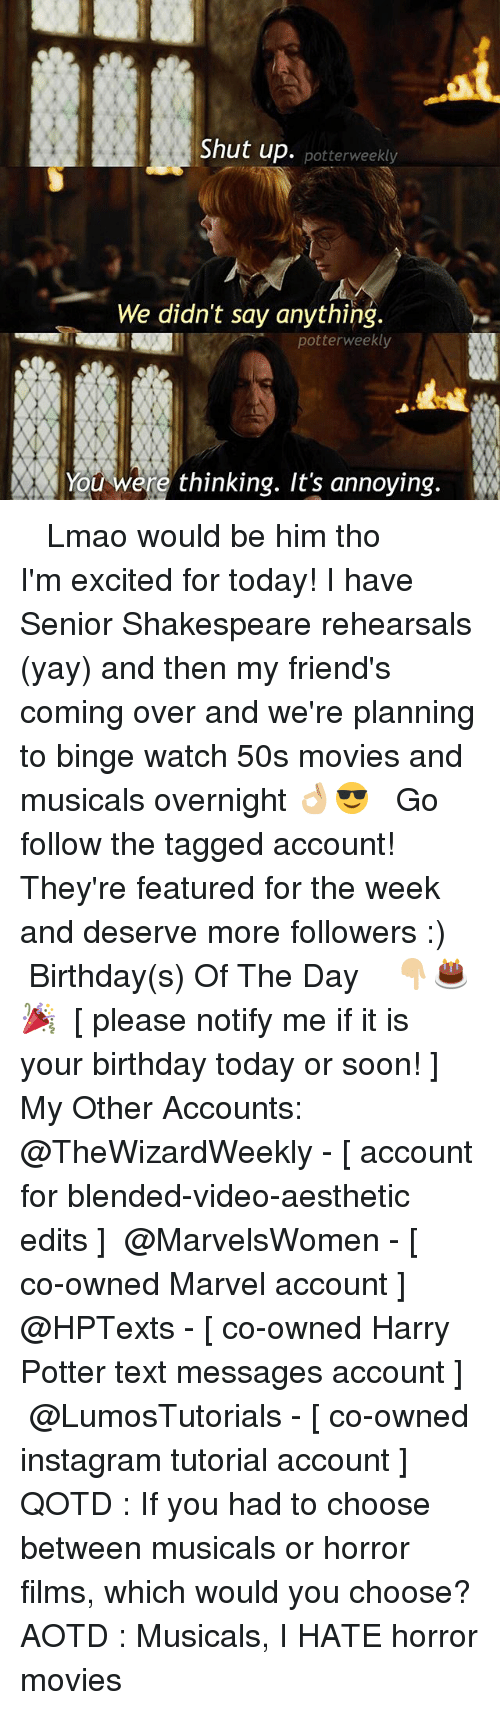 seniority: Shut up. potterweekly  We didn't say anything.  potterweekly  You were thinking. It's annoying. ✎✐✎ ↯ ⇢ Lmao would be him tho ↯ ⇢ I'm excited for today! I have Senior Shakespeare rehearsals (yay) and then my friend's coming over and we're planning to binge watch 50s movies and musicals overnight 👌🏼😎 ↯ ⇢ Go follow the tagged account! They're featured for the week and deserve more followers :) ✎✐✎ Birthday(s) Of The Day 👇🏼🎂🎉 ⇢ [ please notify me if it is your birthday today or soon! ] ✎✐✎ My Other Accounts: ⇢ @TheWizardWeekly - [ account for blended-video-aesthetic edits ] ⇢ @MarvelsWomen - [ co-owned Marvel account ] ⇢ @HPTexts - [ co-owned Harry Potter text messages account ] ⇢ @LumosTutorials - [ co-owned instagram tutorial account ] ✎✐✎ QOTD : If you had to choose between musicals or horror films, which would you choose? AOTD : Musicals, I HATE horror movies